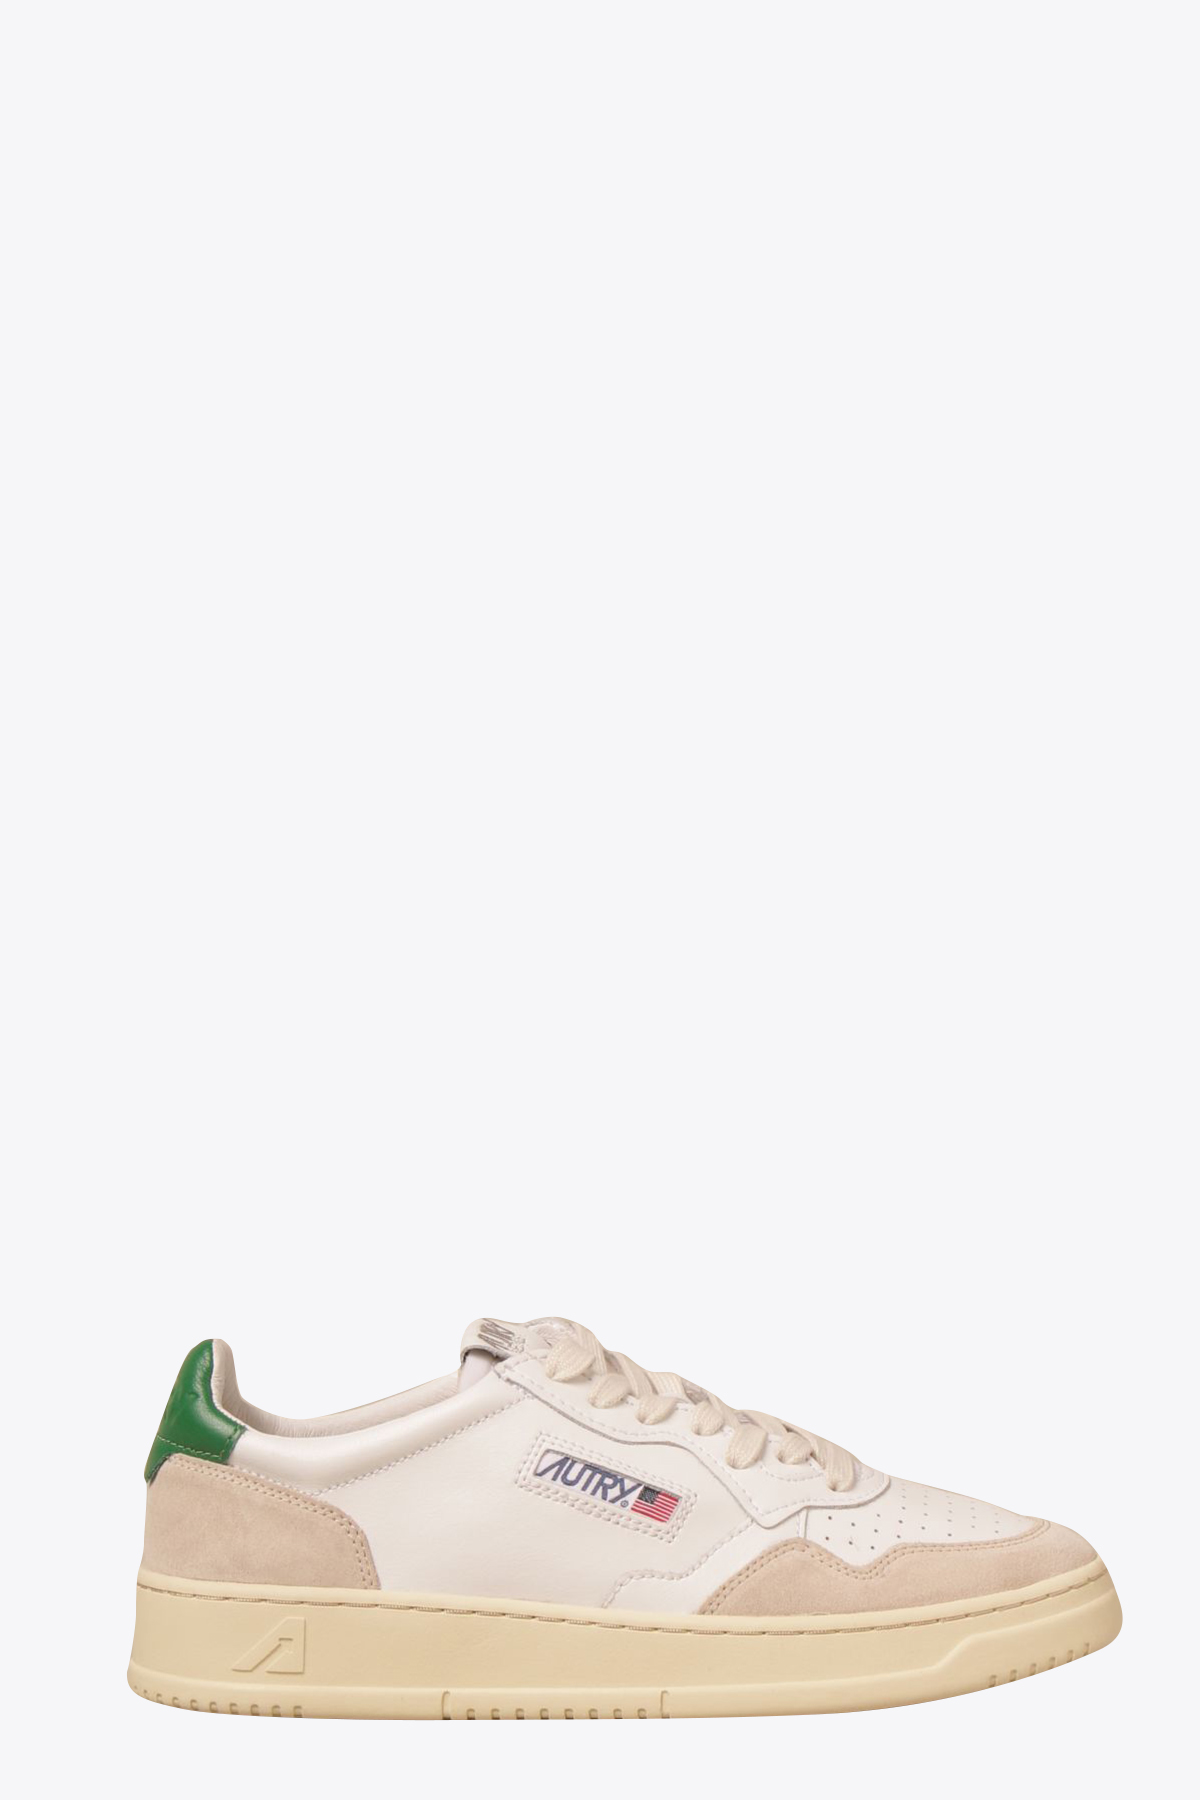 White and green  leather low-top lace up sneakers AUTRY   10000039   LS23WHITE/AMAZON